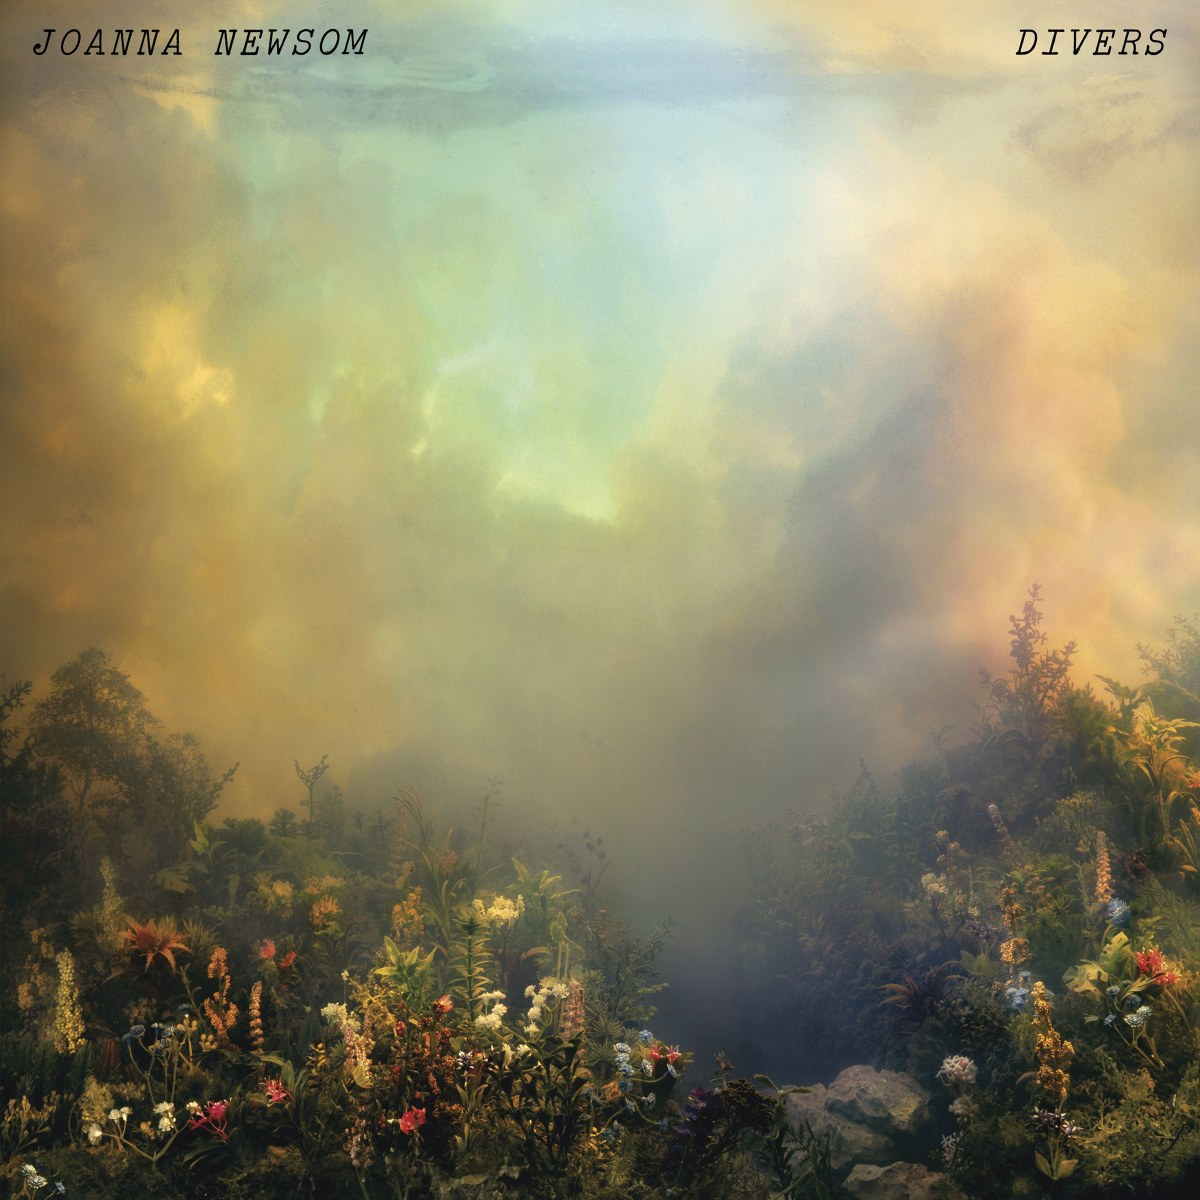 Newsom, Joanna - Divers 2LP